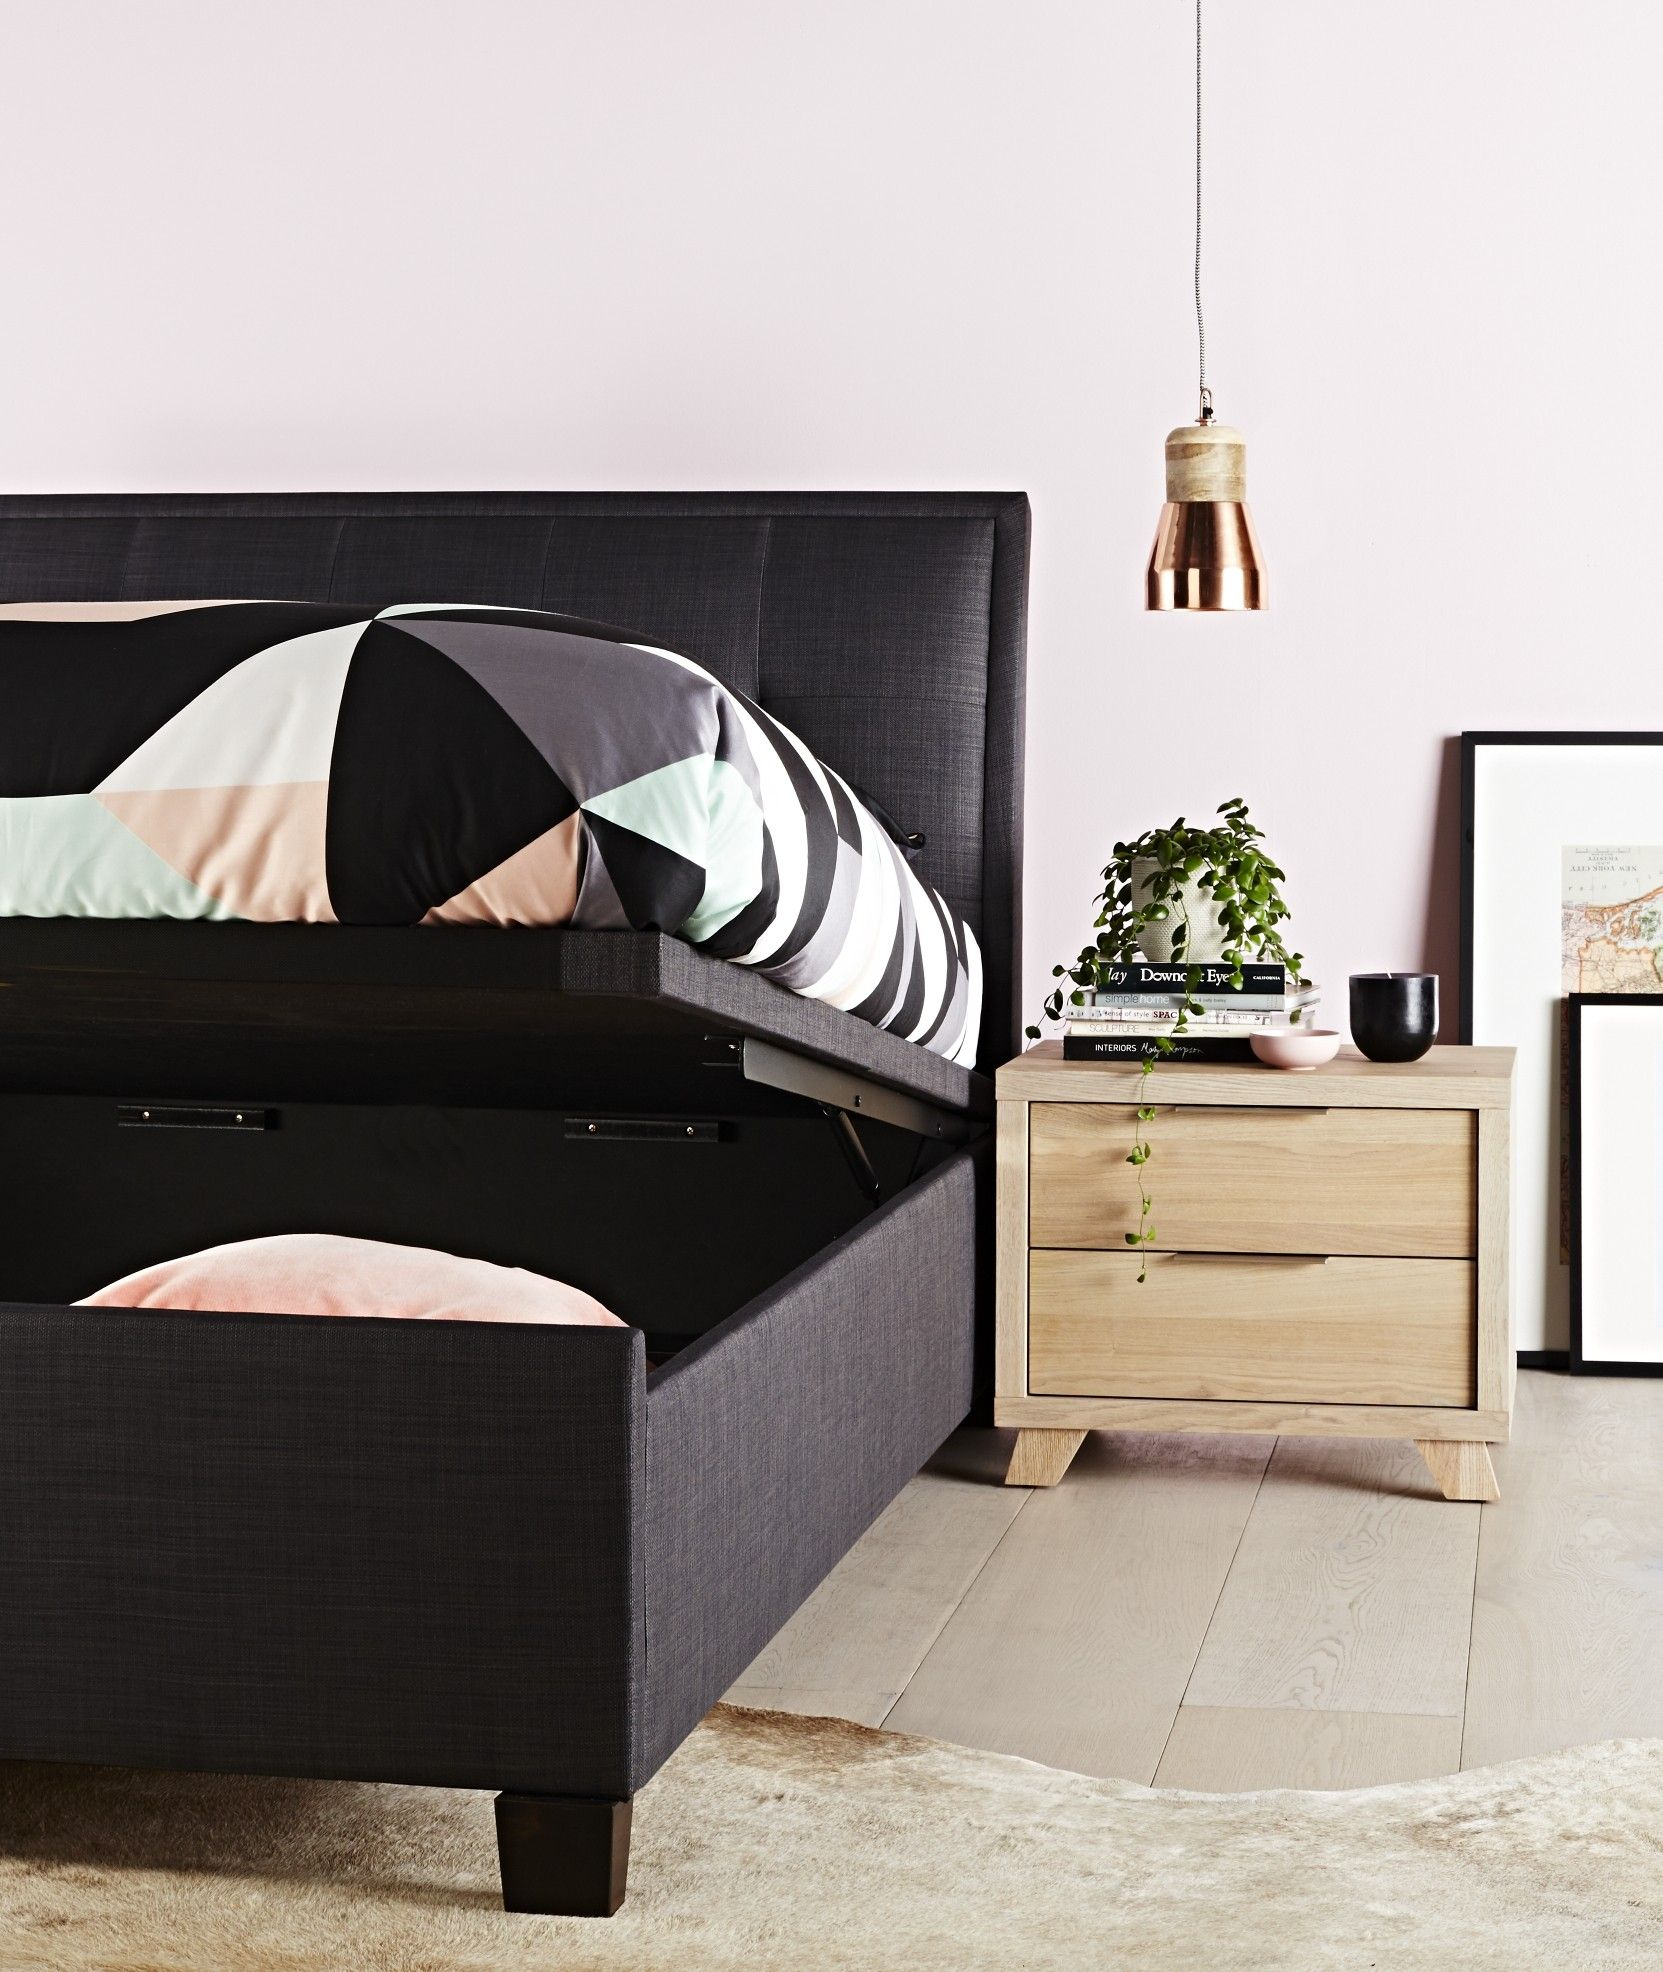 Bed furniture with drawers - Accent Bedroom Furniture Drawer Base The Accent Is A Modern Stylish Centrepiece Bed Frame With A Functional And Space Saving Drawer Base Fin